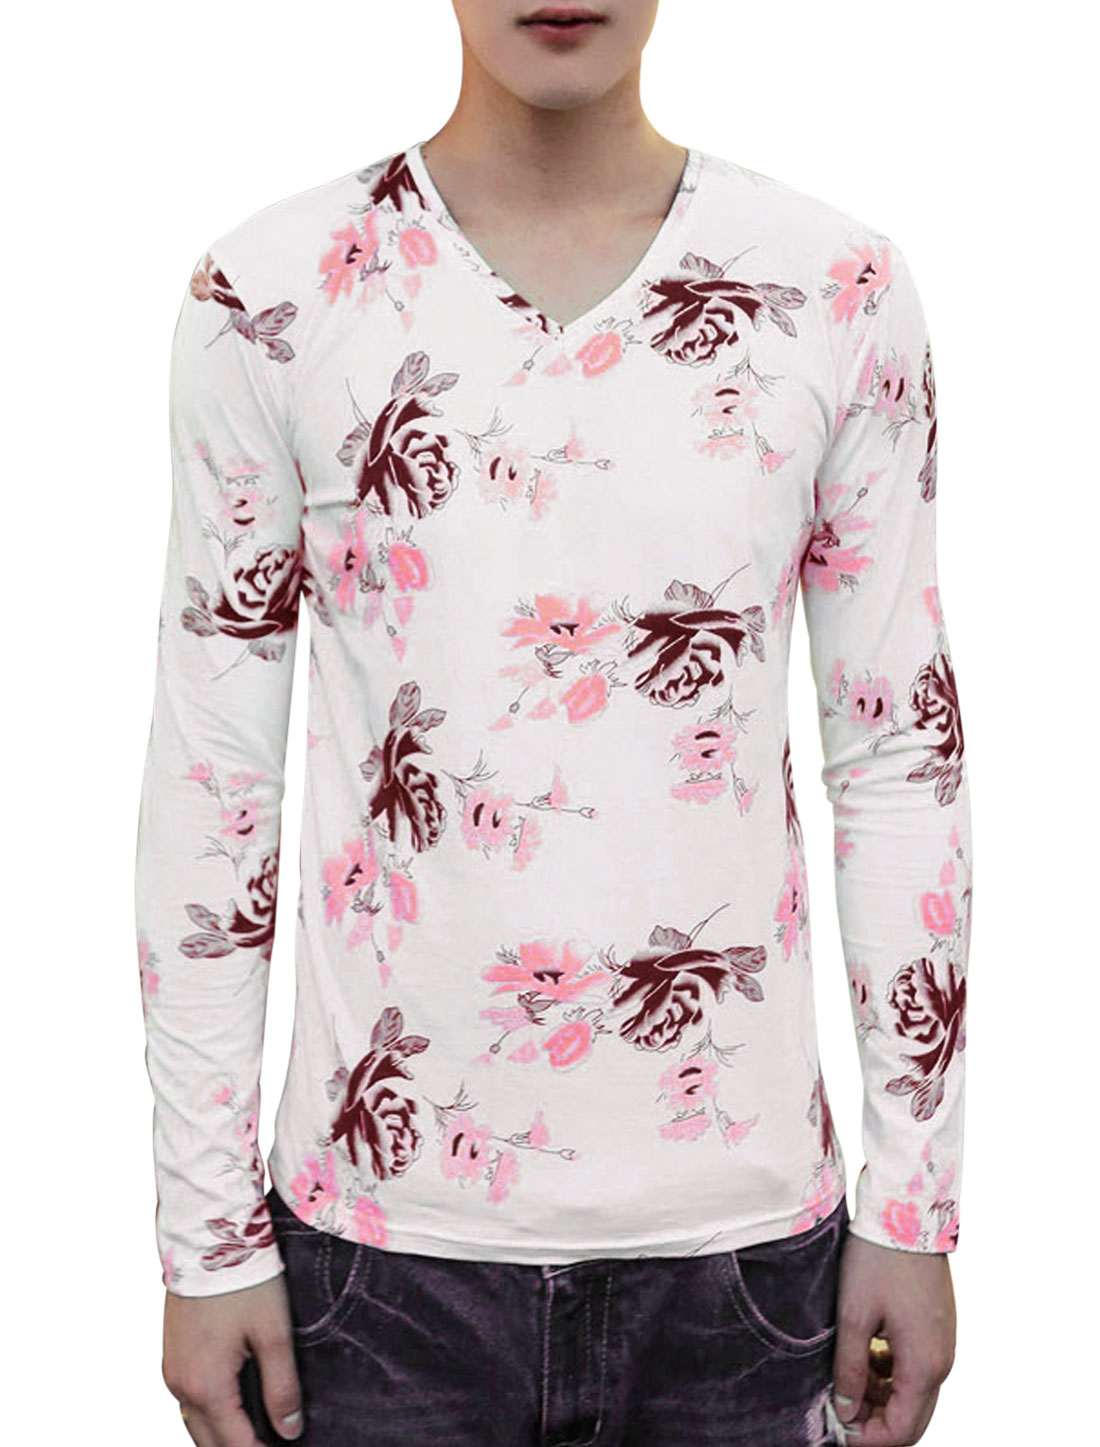 Man Long Sleeves Allover Prints Slim Fit V Neck Casual Shirt Pink White S